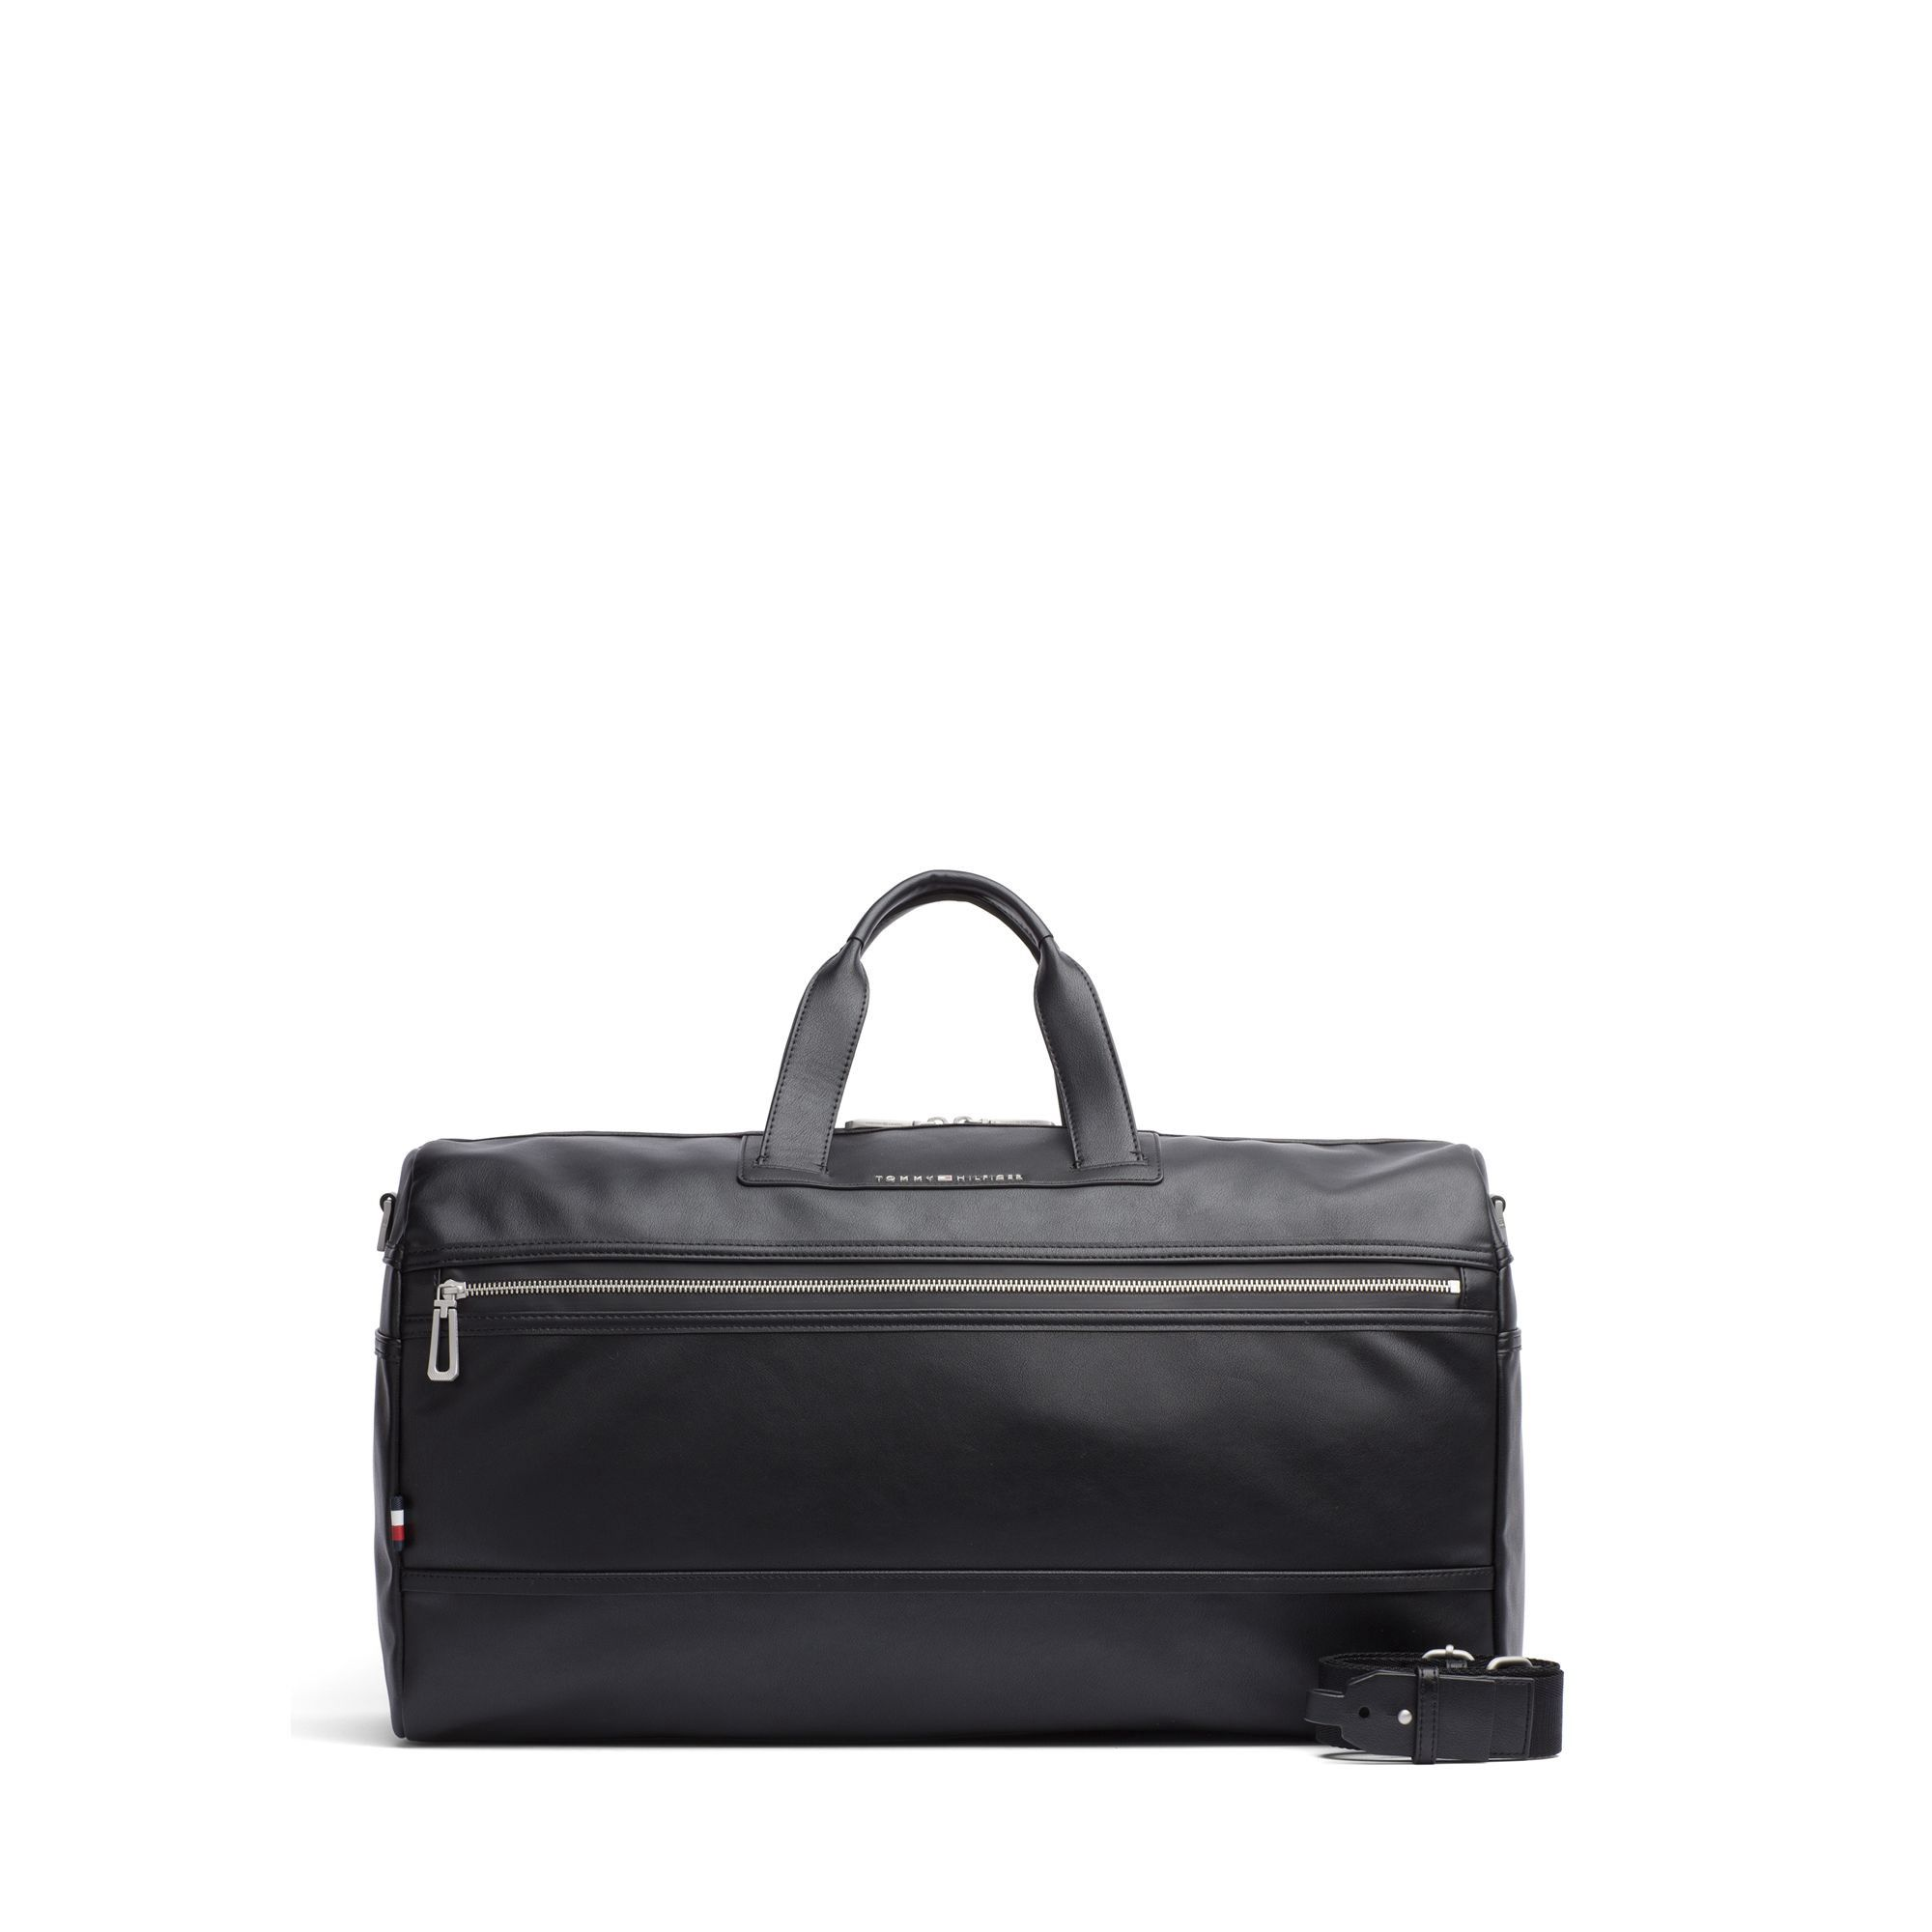 bfc63b5e TOMMY HILFIGER CITY DUFFLE BAG - BLACK. #tommyhilfiger #bags #leather  #travel bags #weekend #